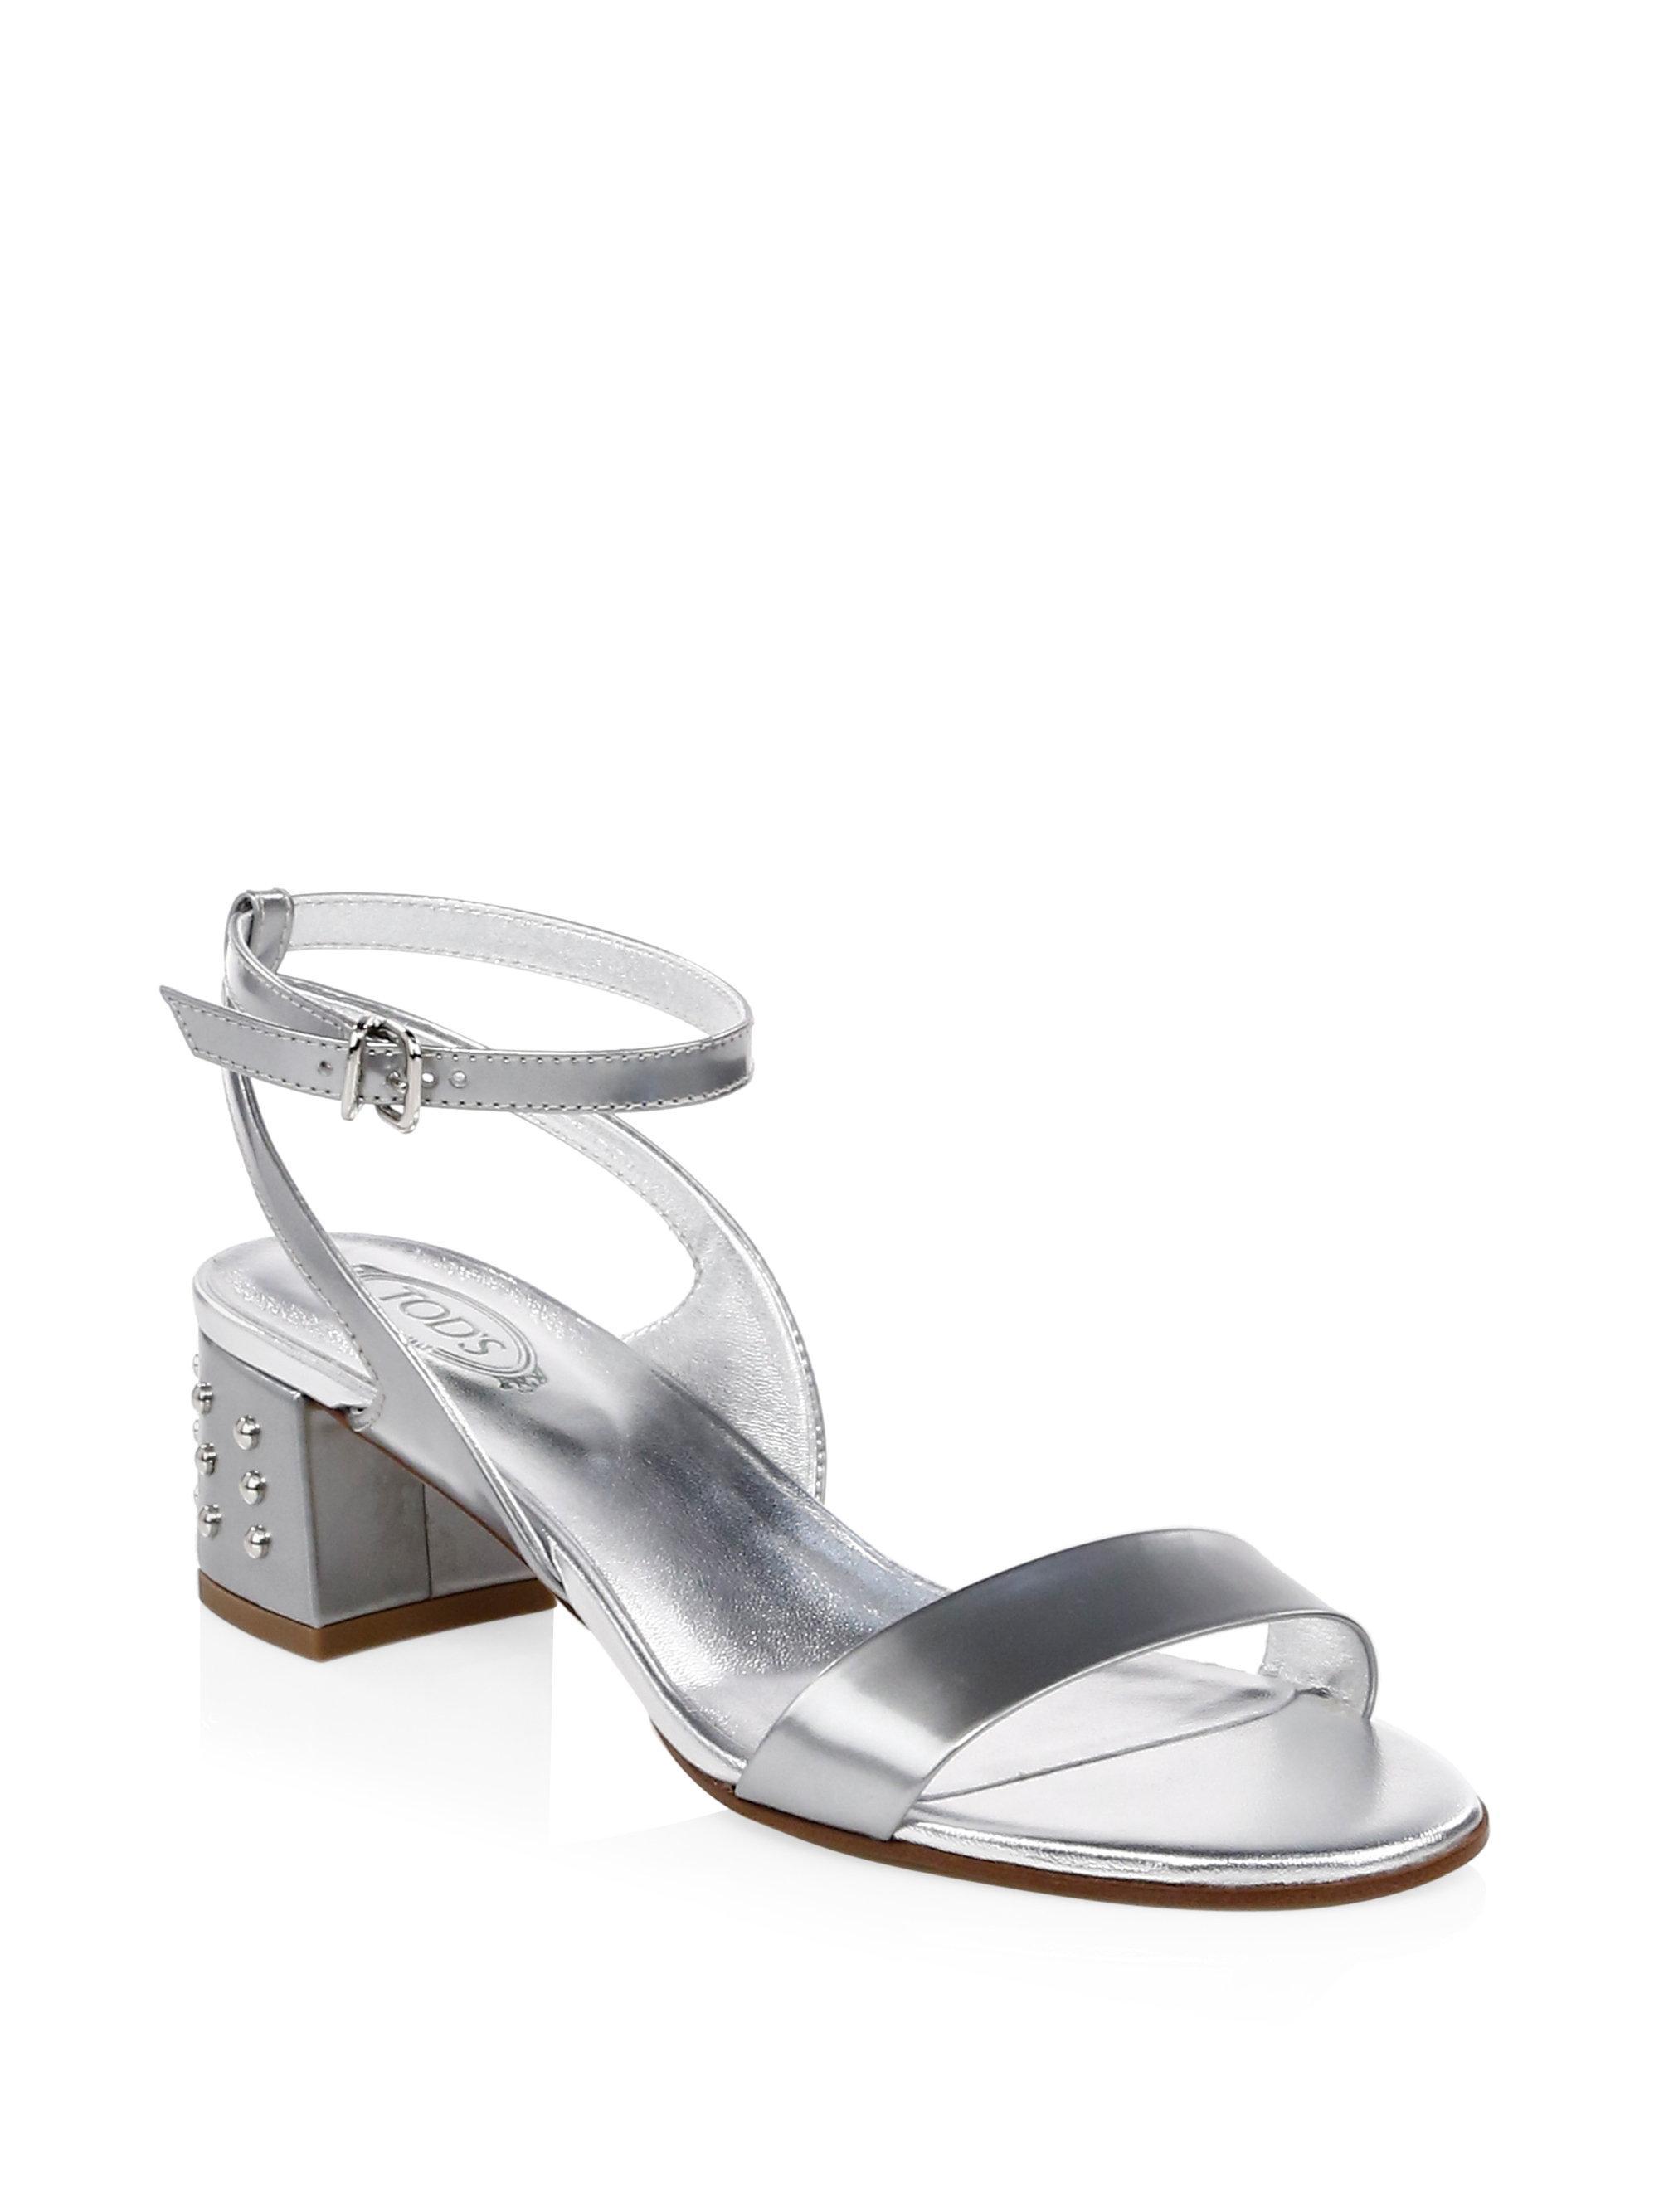 strappy sandals - Metallic Tod's